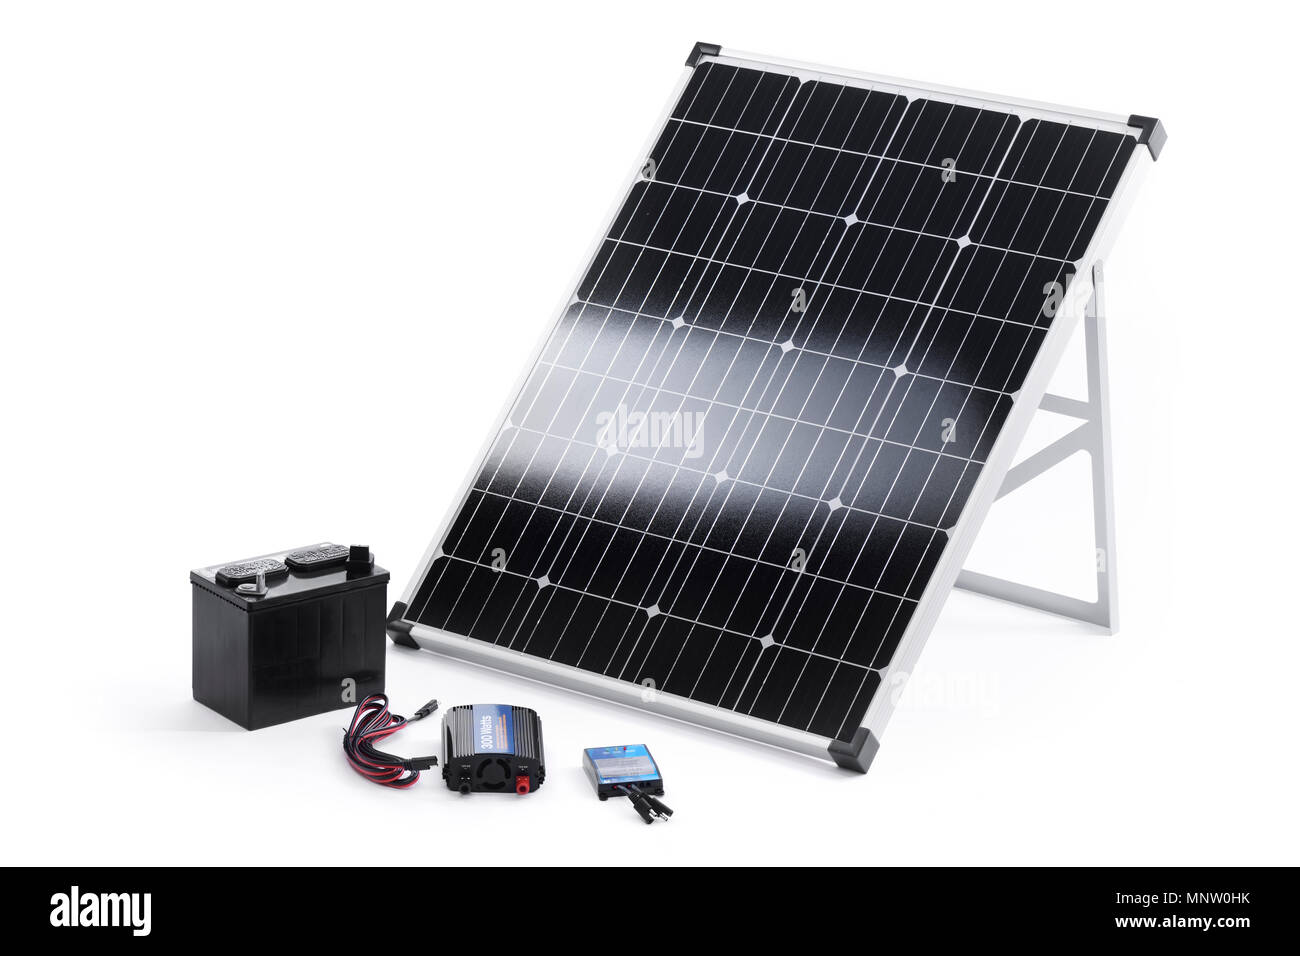 Solar power kit with a portable 100 Watt crystalline solar panel, inverter, charge controller and a battery isolated on white background Stock Photo